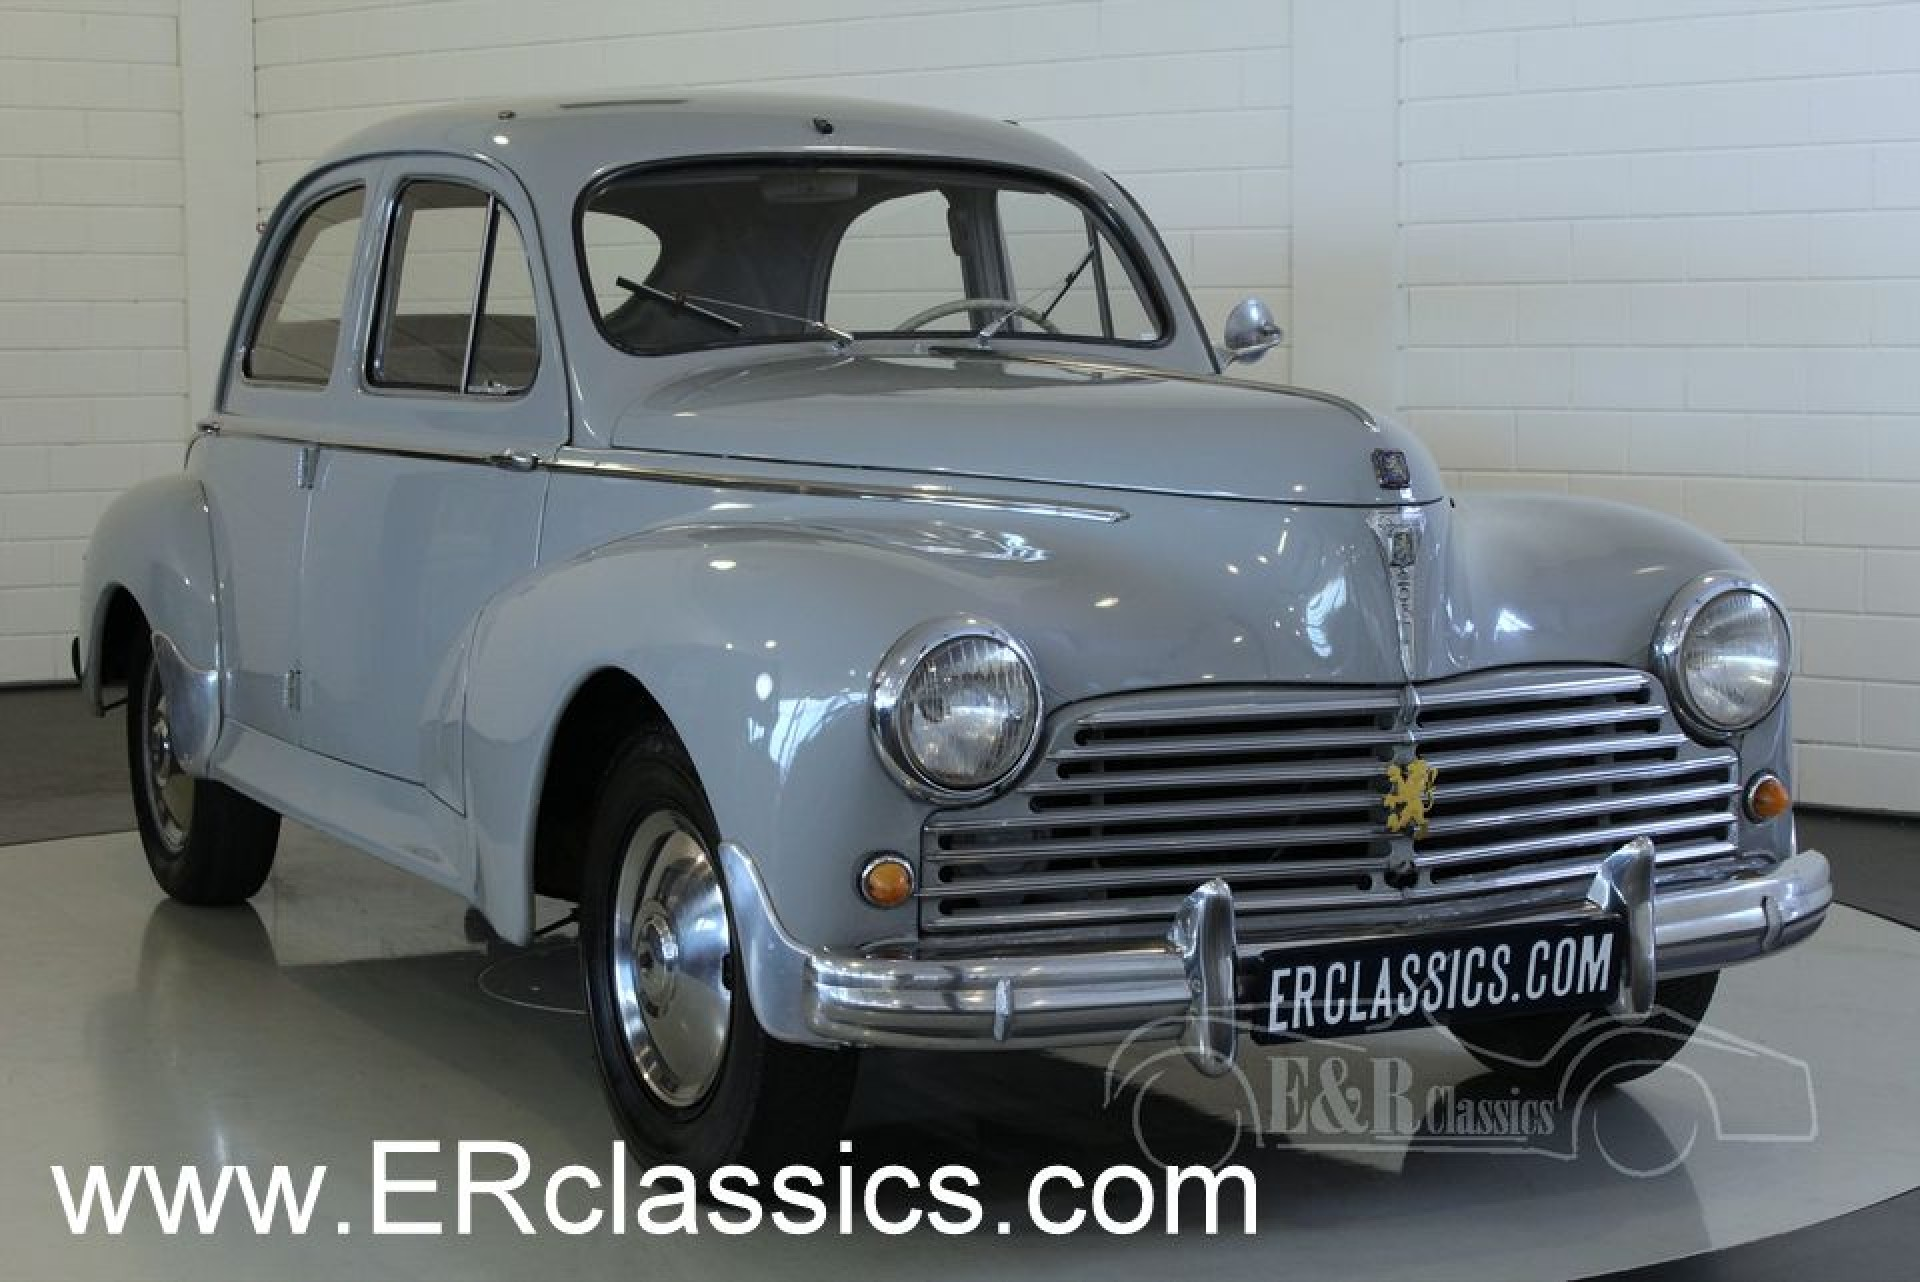 Peugeot 203 Saloon 1950 For Sale At Erclassics